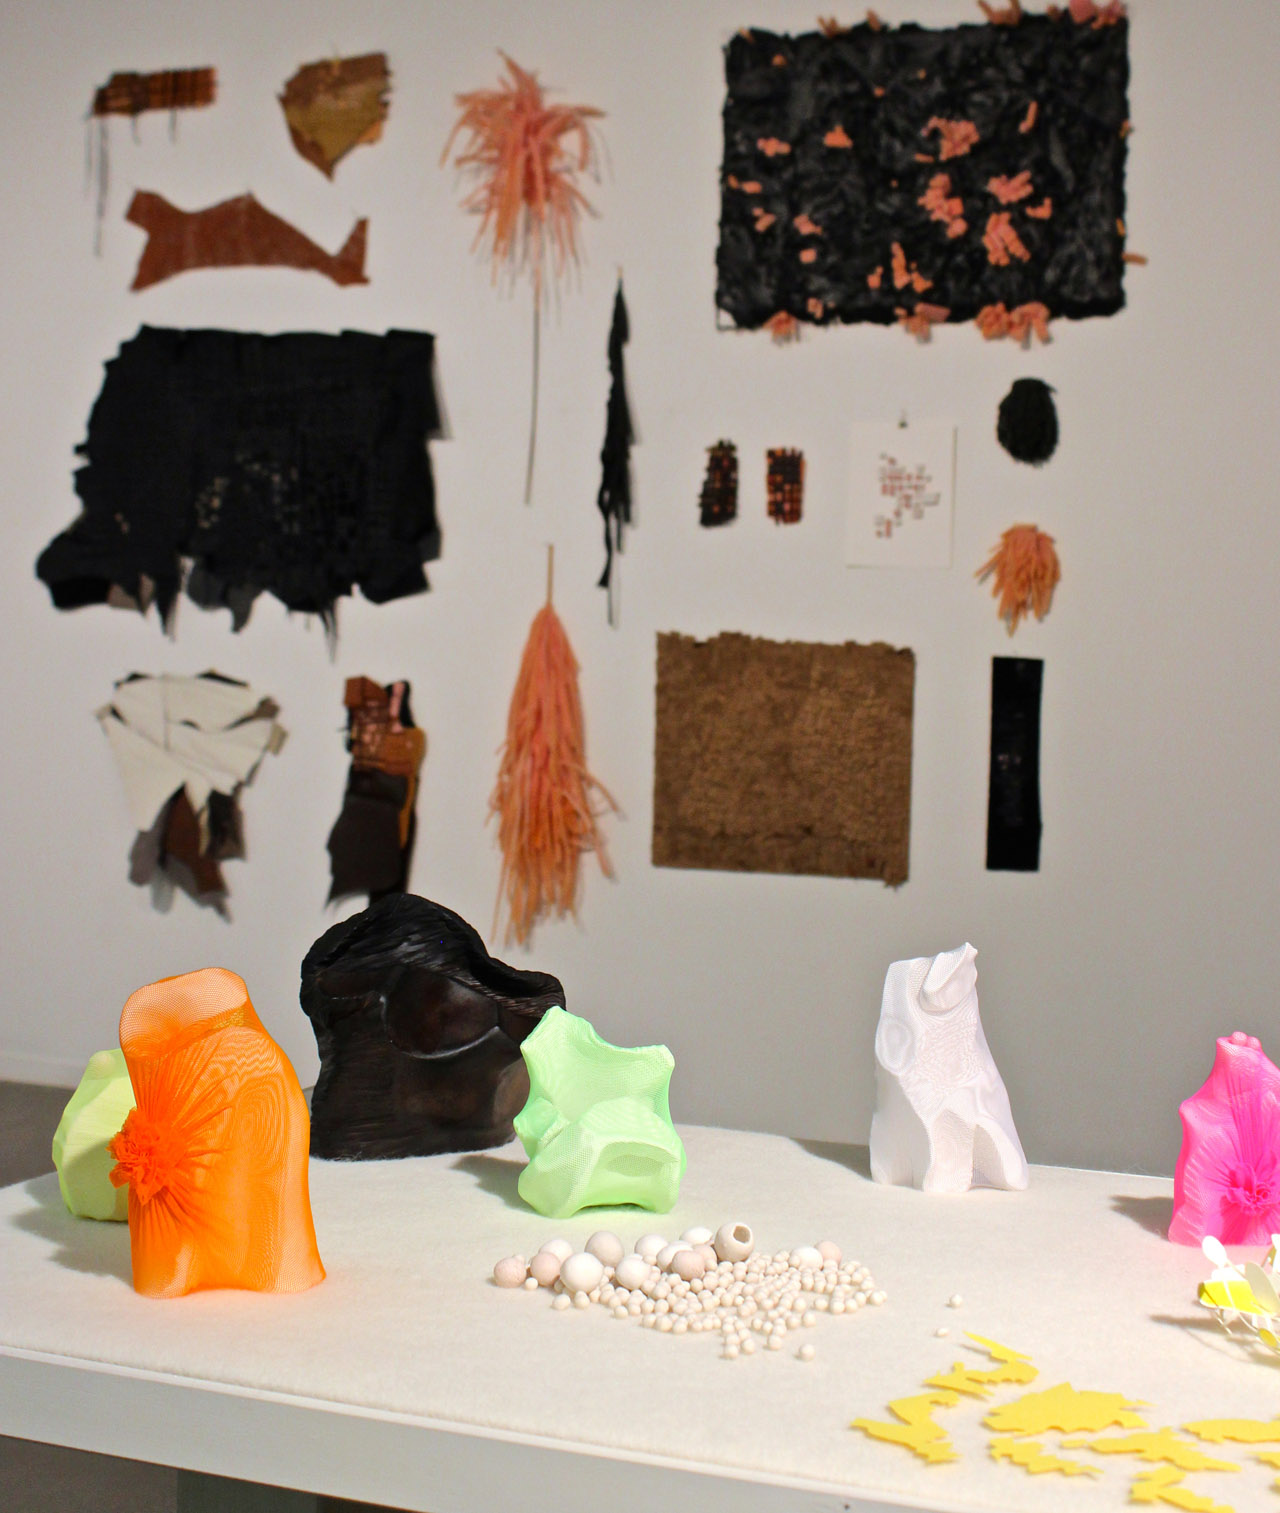 Works by Lynn Bennett-Carpenter in the foreground with Carrie Dickason's wall installation in the background